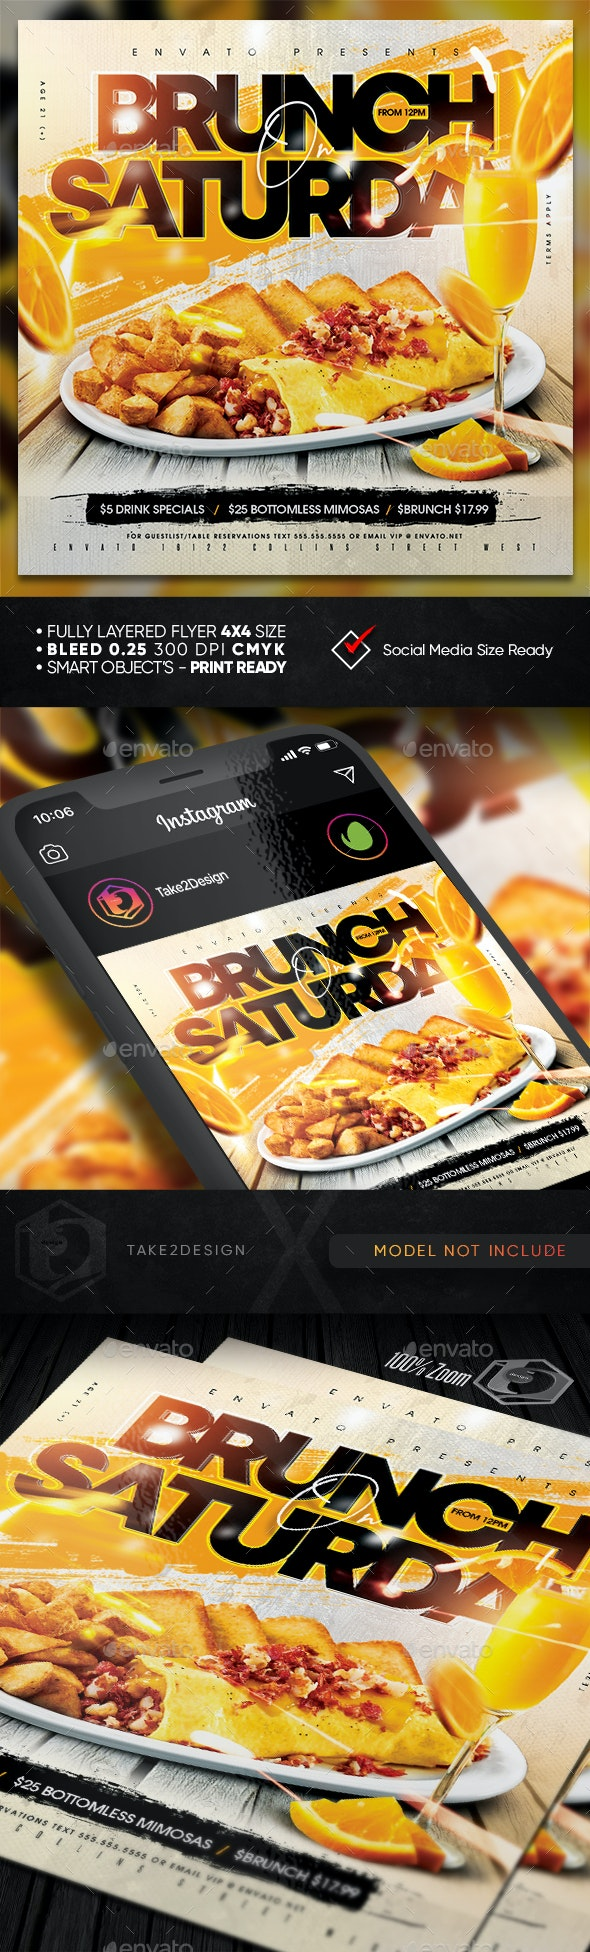 Brunch On Saturday Flyer Template - Clubs & Parties Events